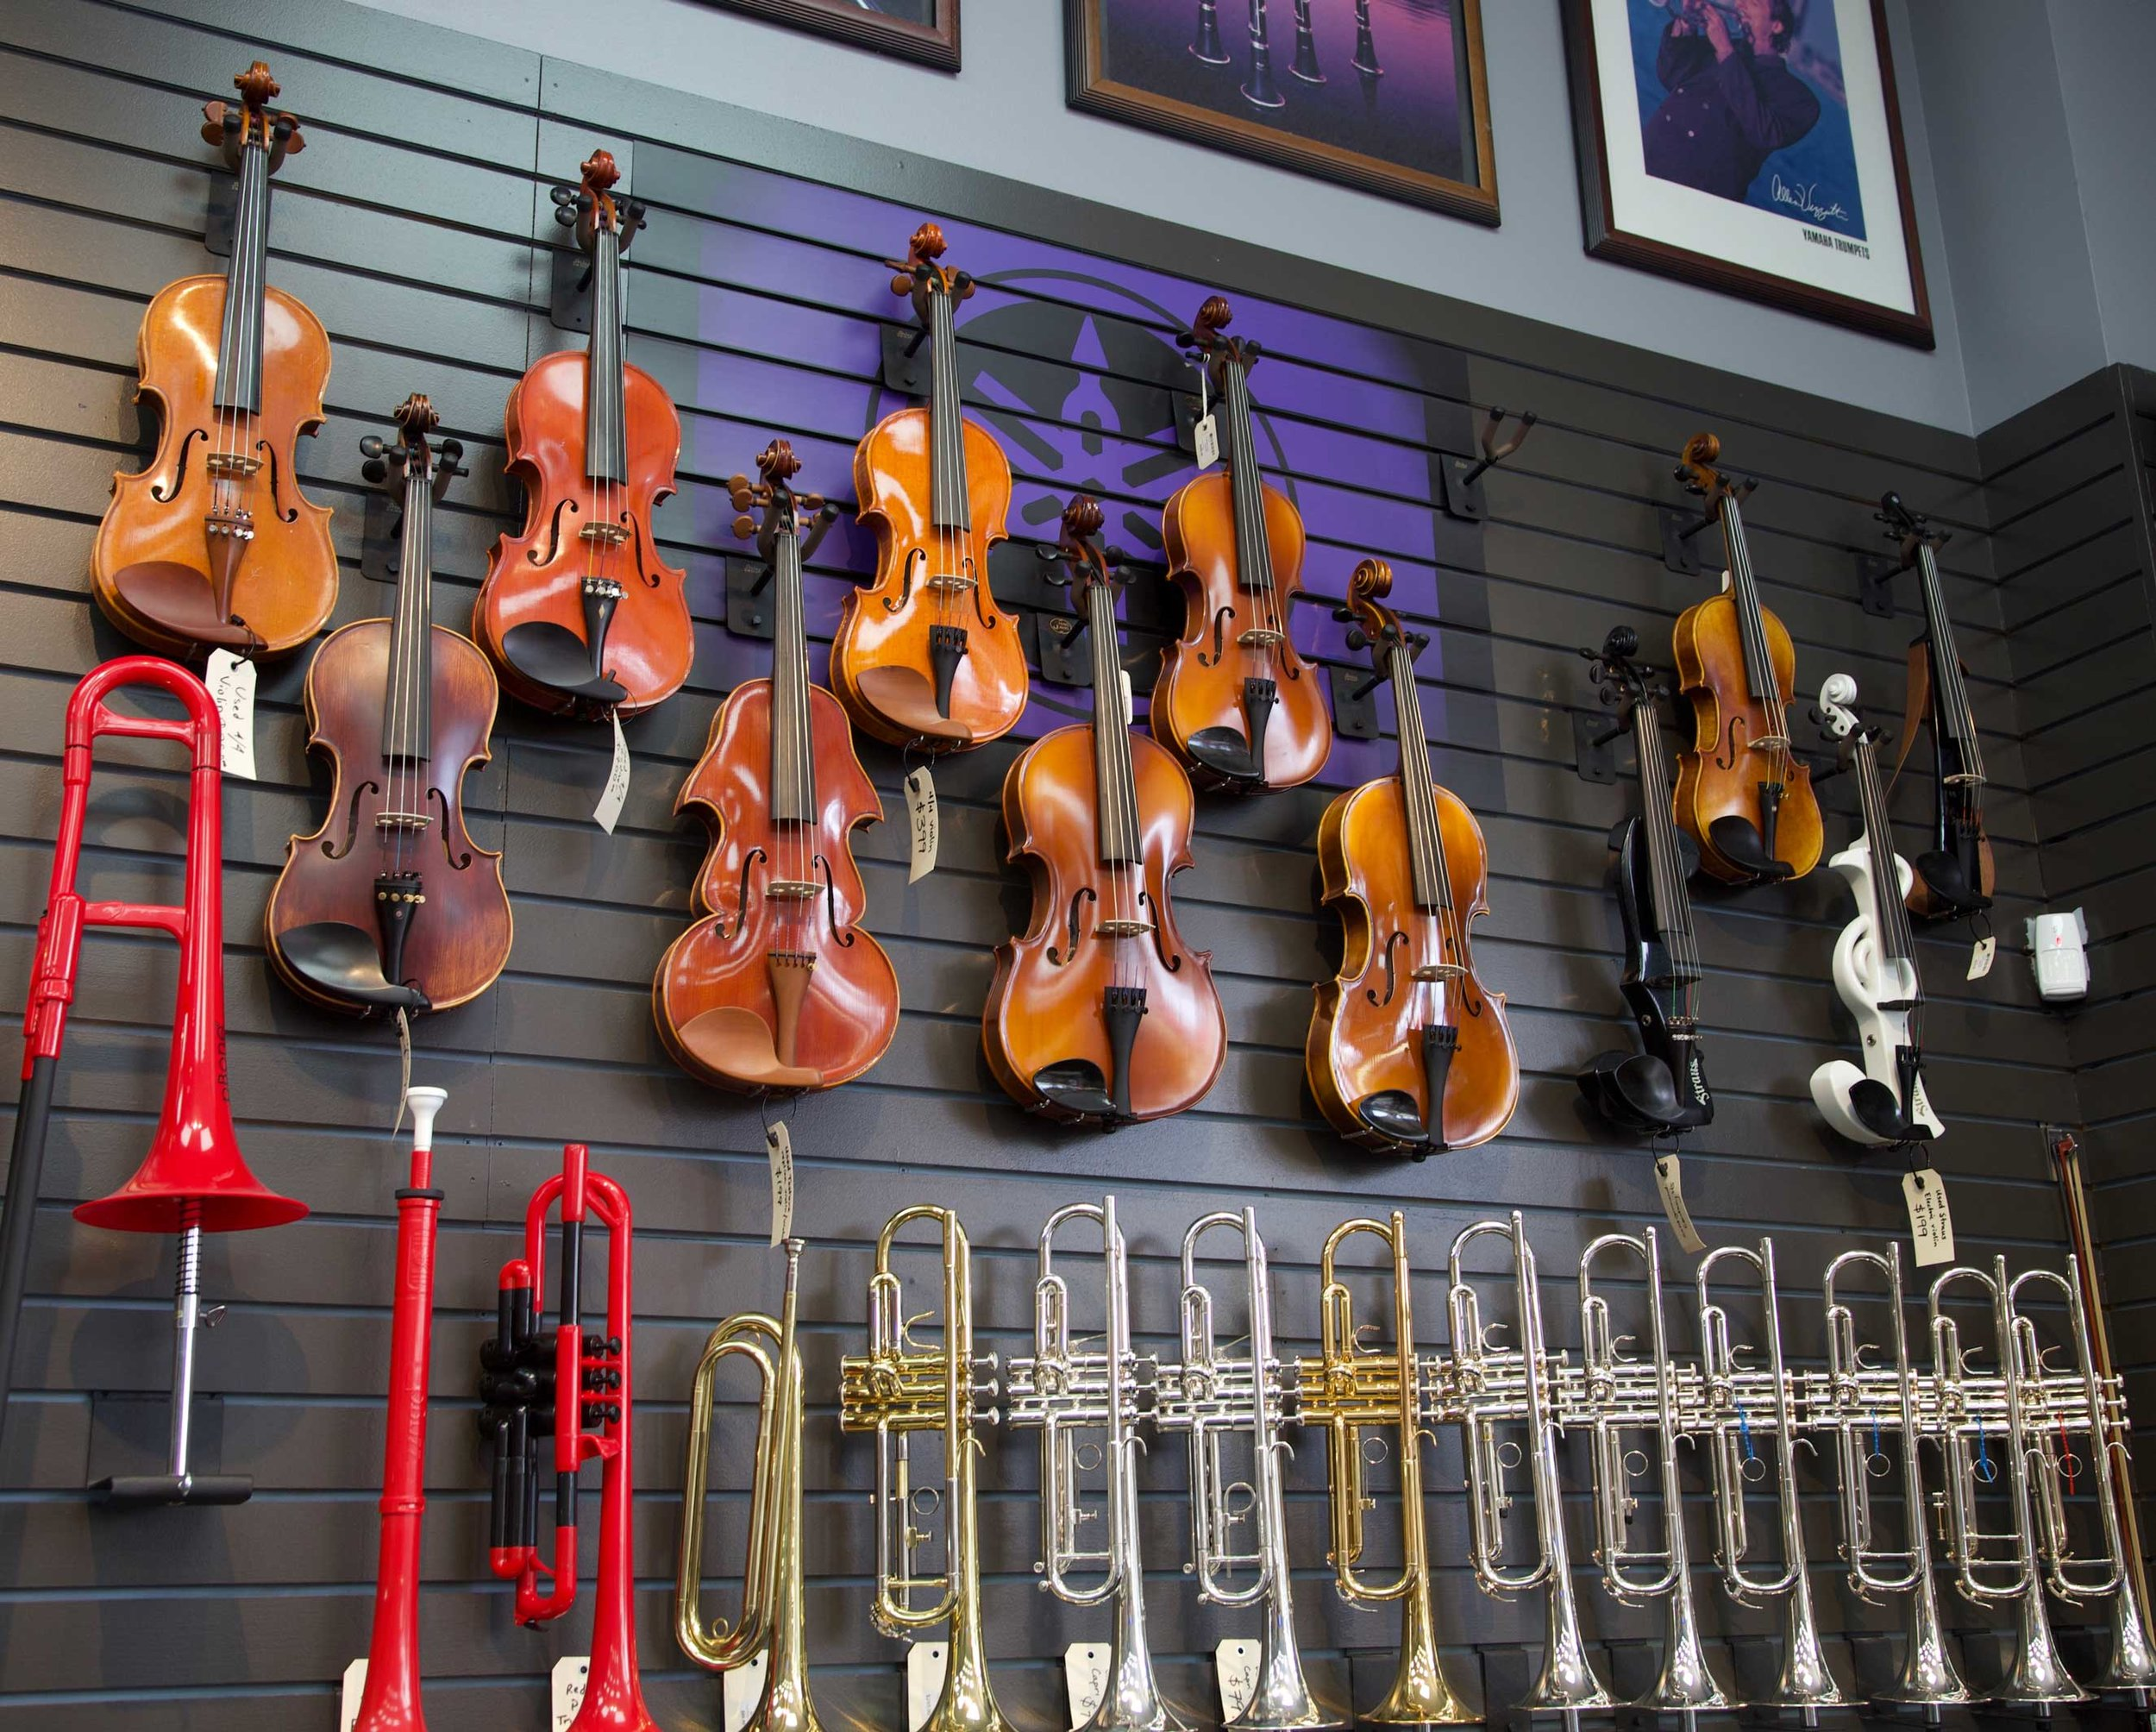 Band/Symphony - Trumpets, violins, whatever band or symphony instrument new or used you are looking for, we likely carry it.